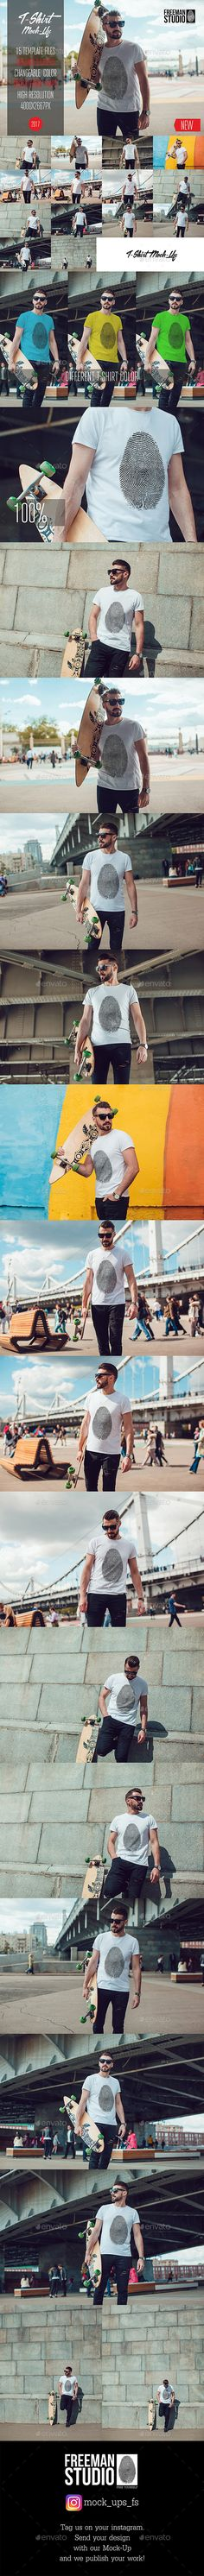 Buy Men's T-Shirt Mock-Up 2017 by Freeman_Studio on GraphicRiver. Men's T-Shirt Mock-Up 2017 ______________________________________________________________ Easy to place your de. Mockup Templates, Print Templates, Design Templates, T Shirt Design Template, Mockup Photoshop, Hipster Logo, Shirt Mockup, Best Graphics, Information Graphics